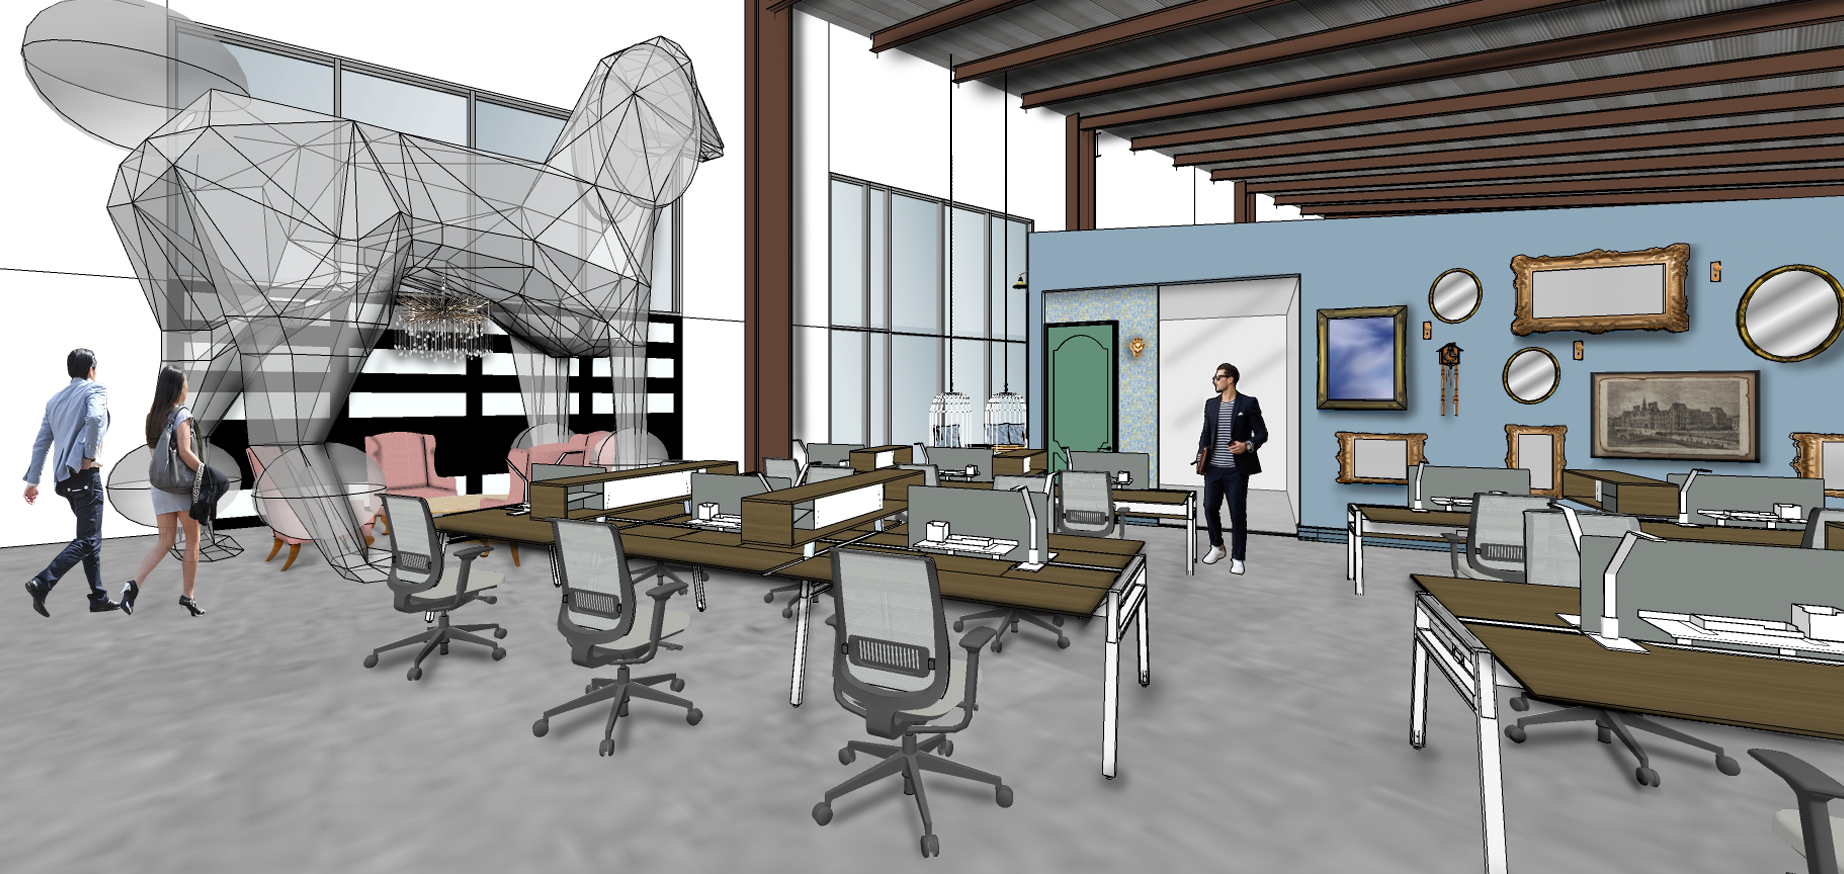 For this HQ, a 20-Foot Tall Poodle Sculpture is Part of the Plan